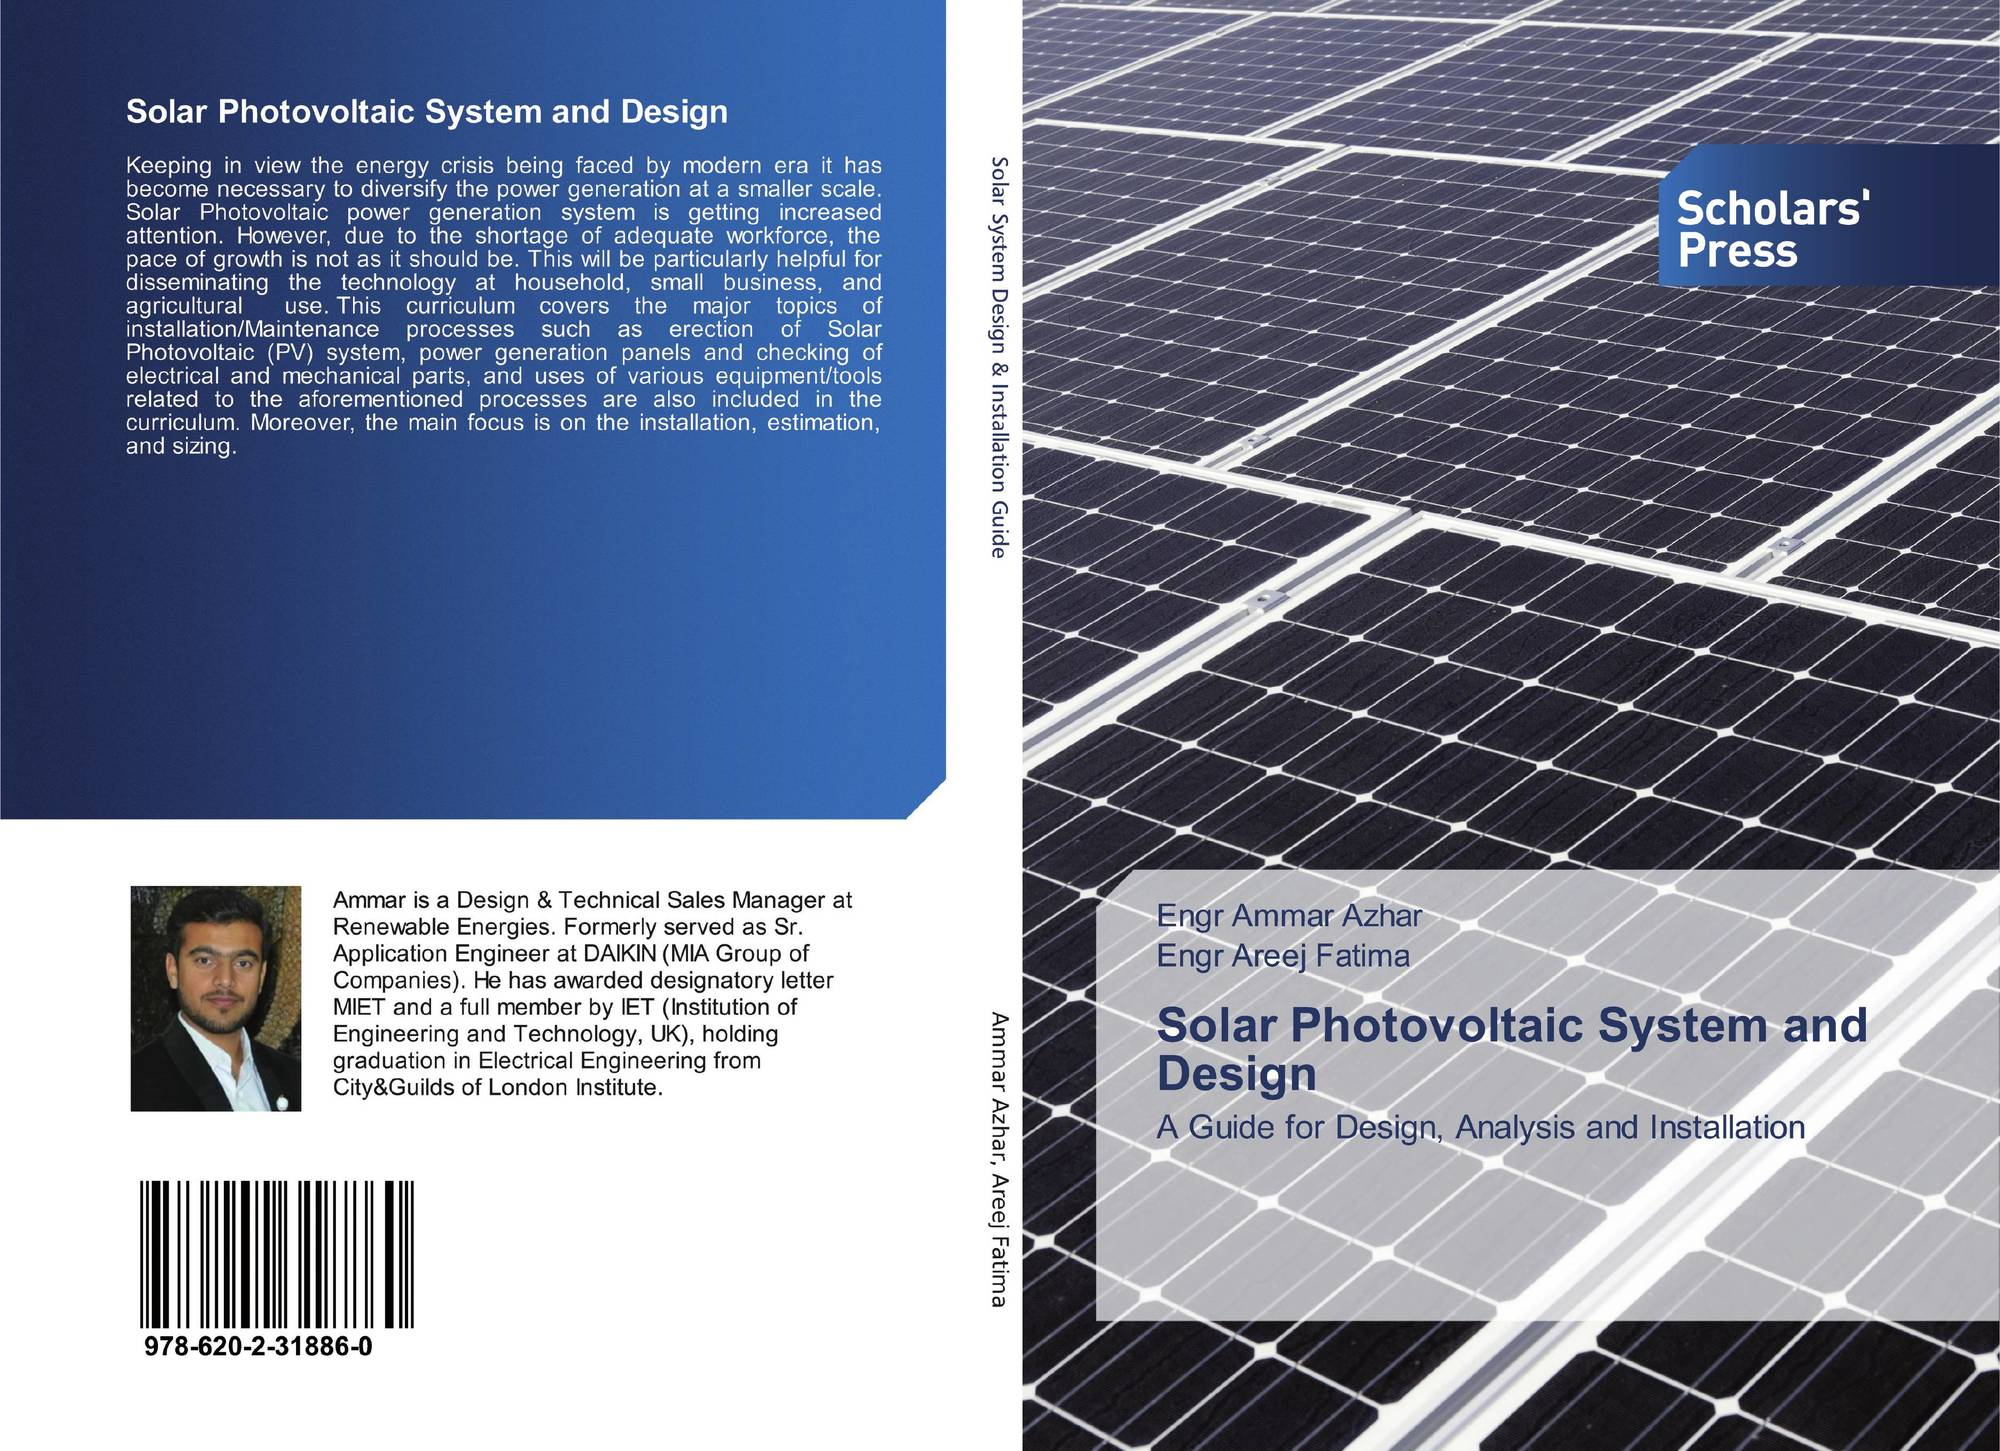 Solar Photovoltaic System and Design, 978-620-2-31886-0 ...